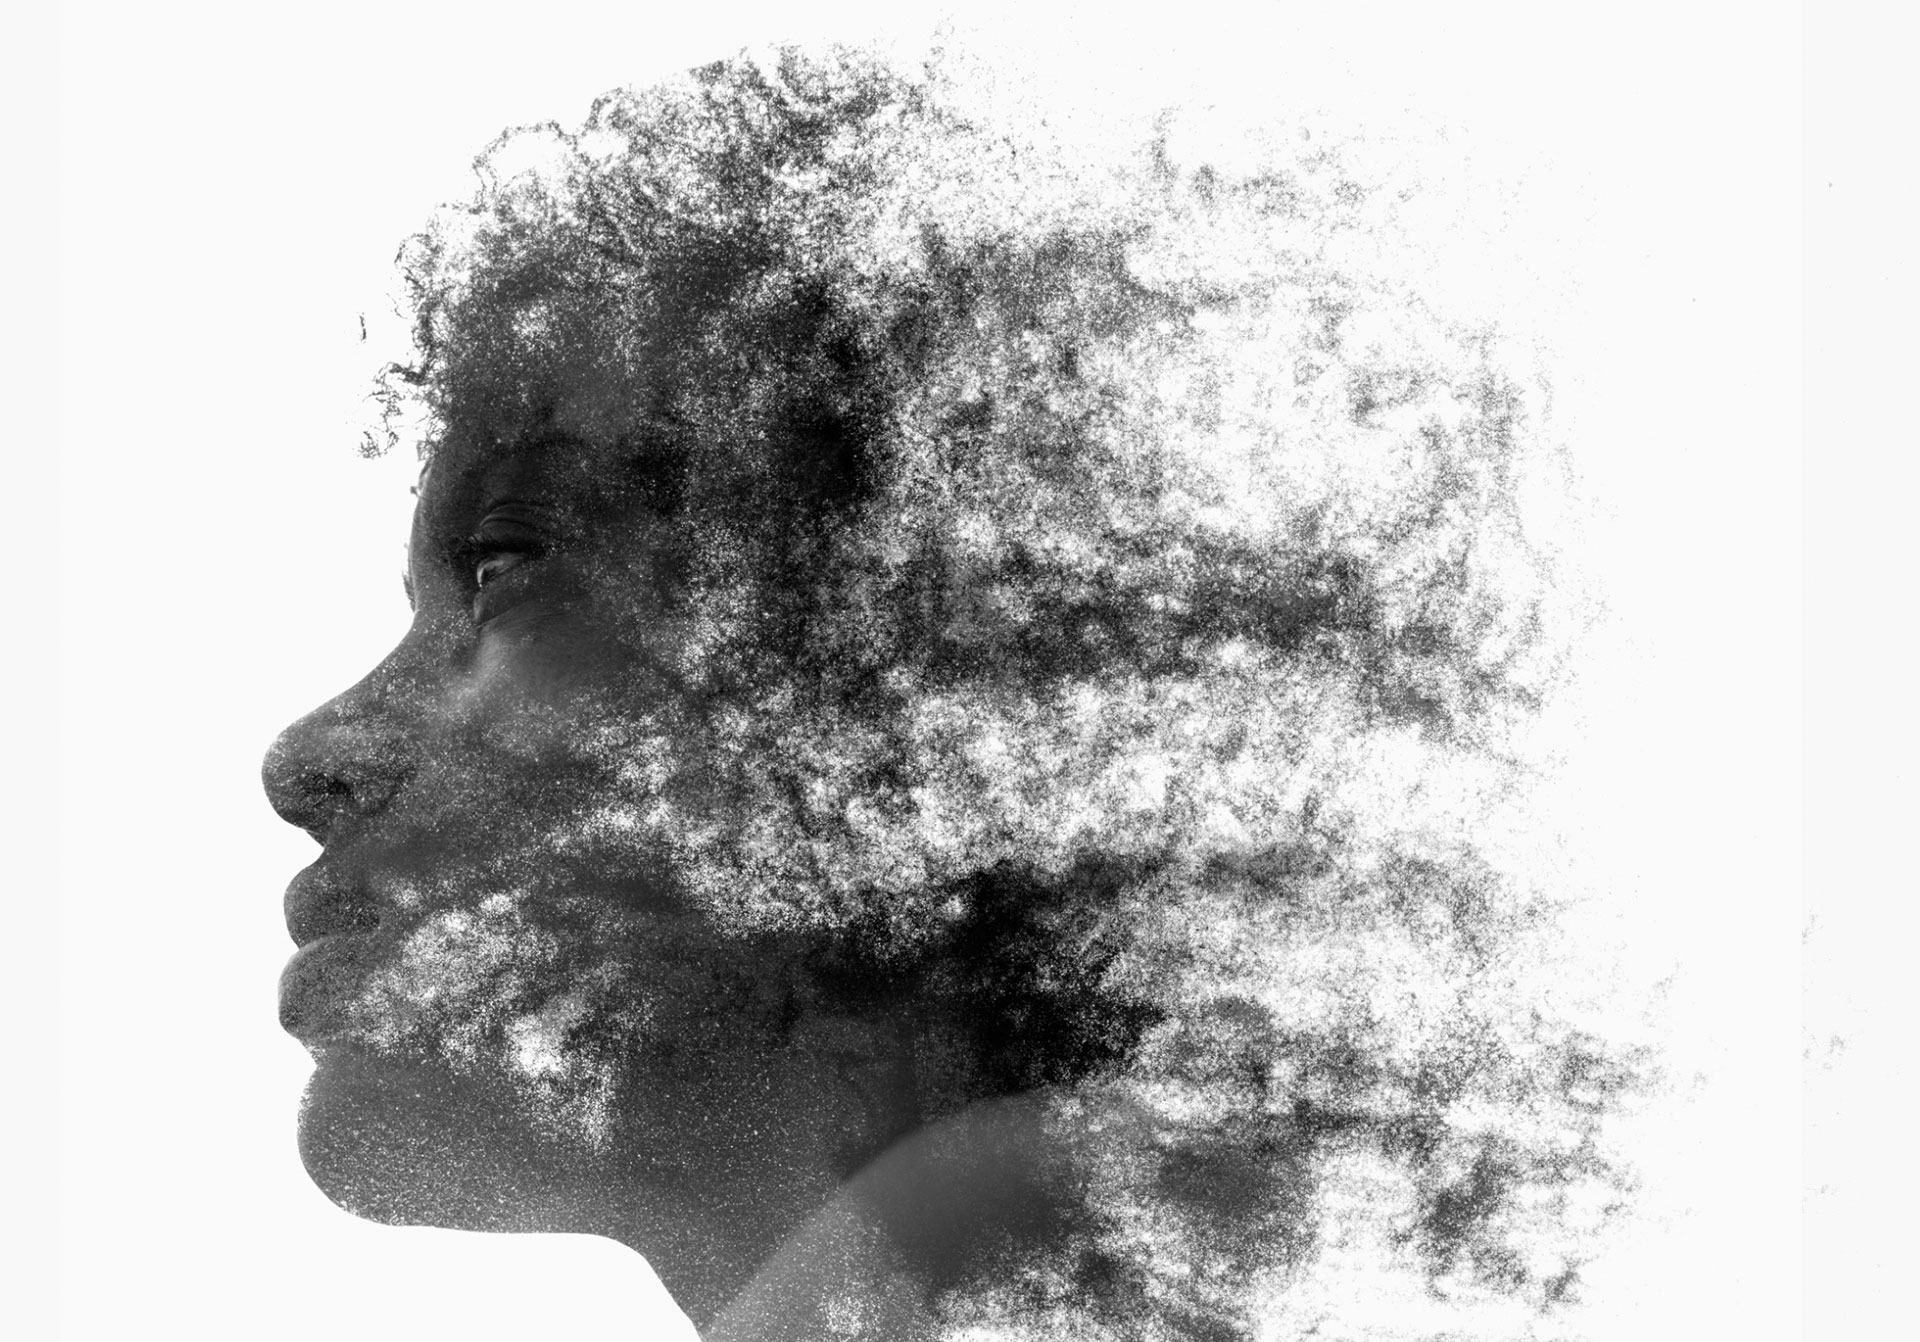 Charcoal Drawing of Black Woman